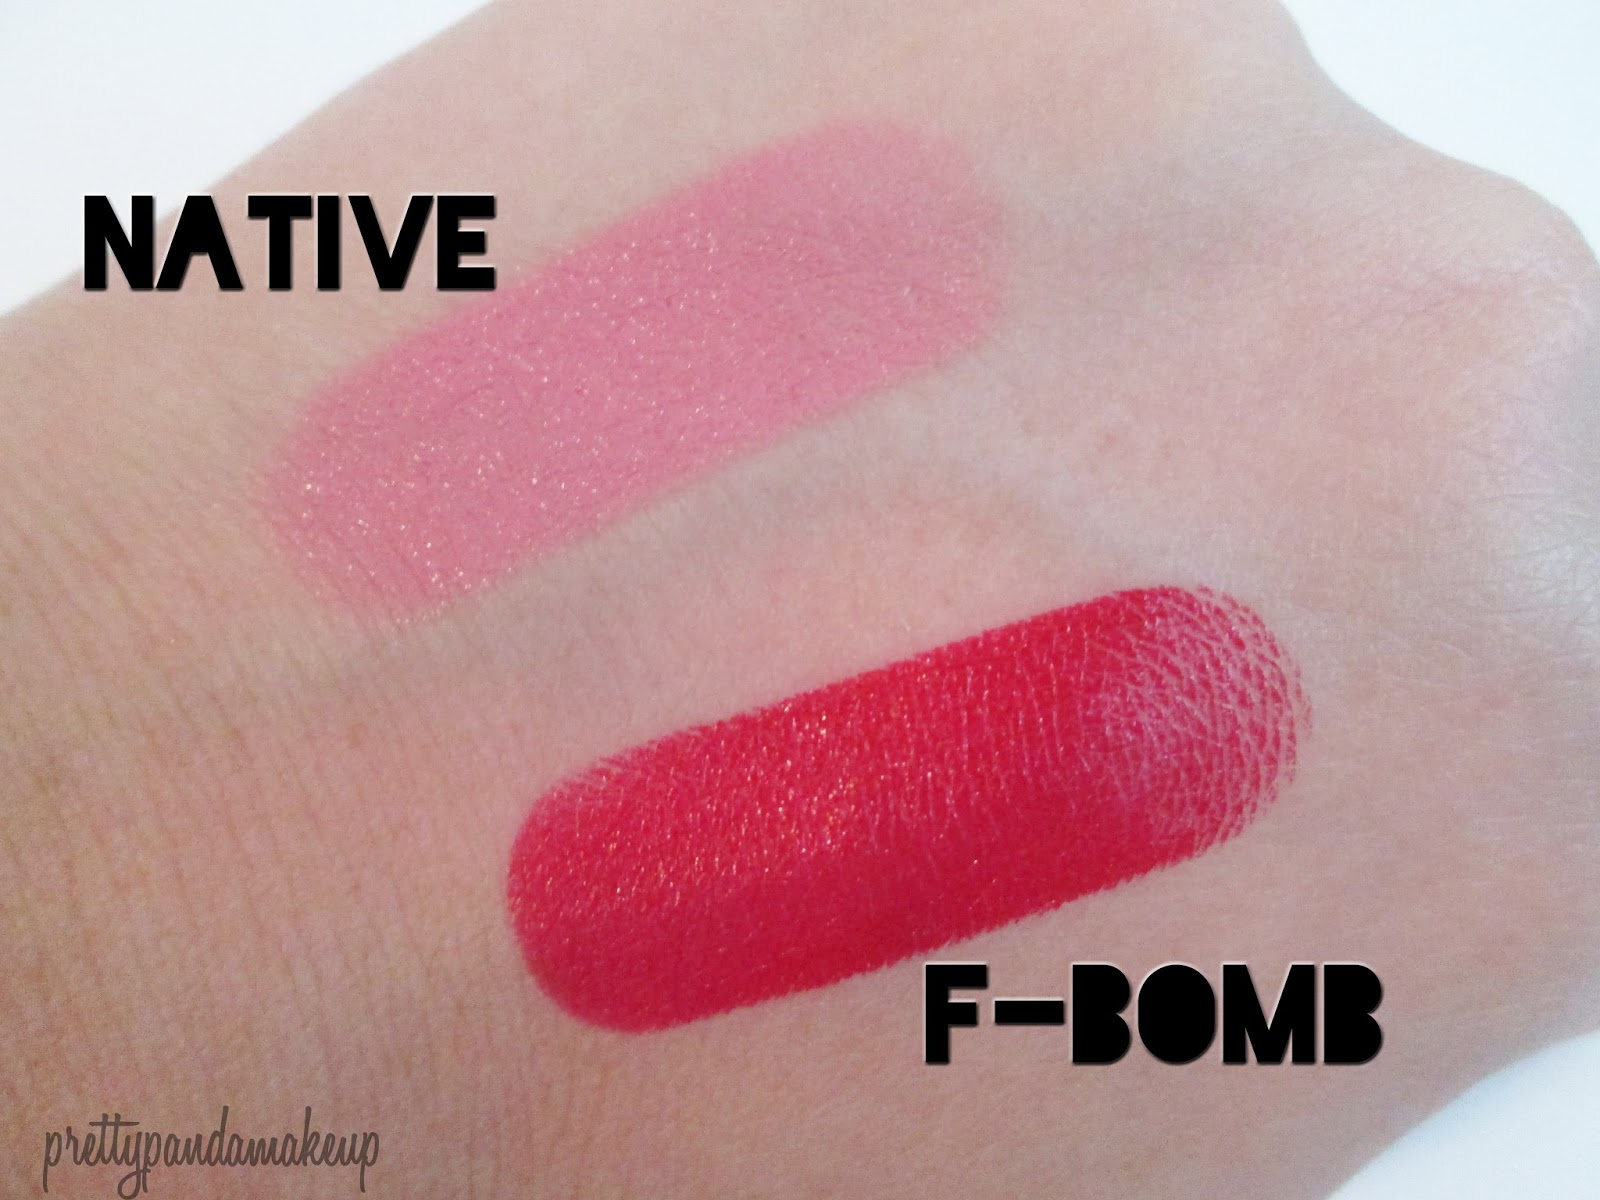 ... Urban Decay Revolution Lipsticks in F-Bomb and Native: Swatches and